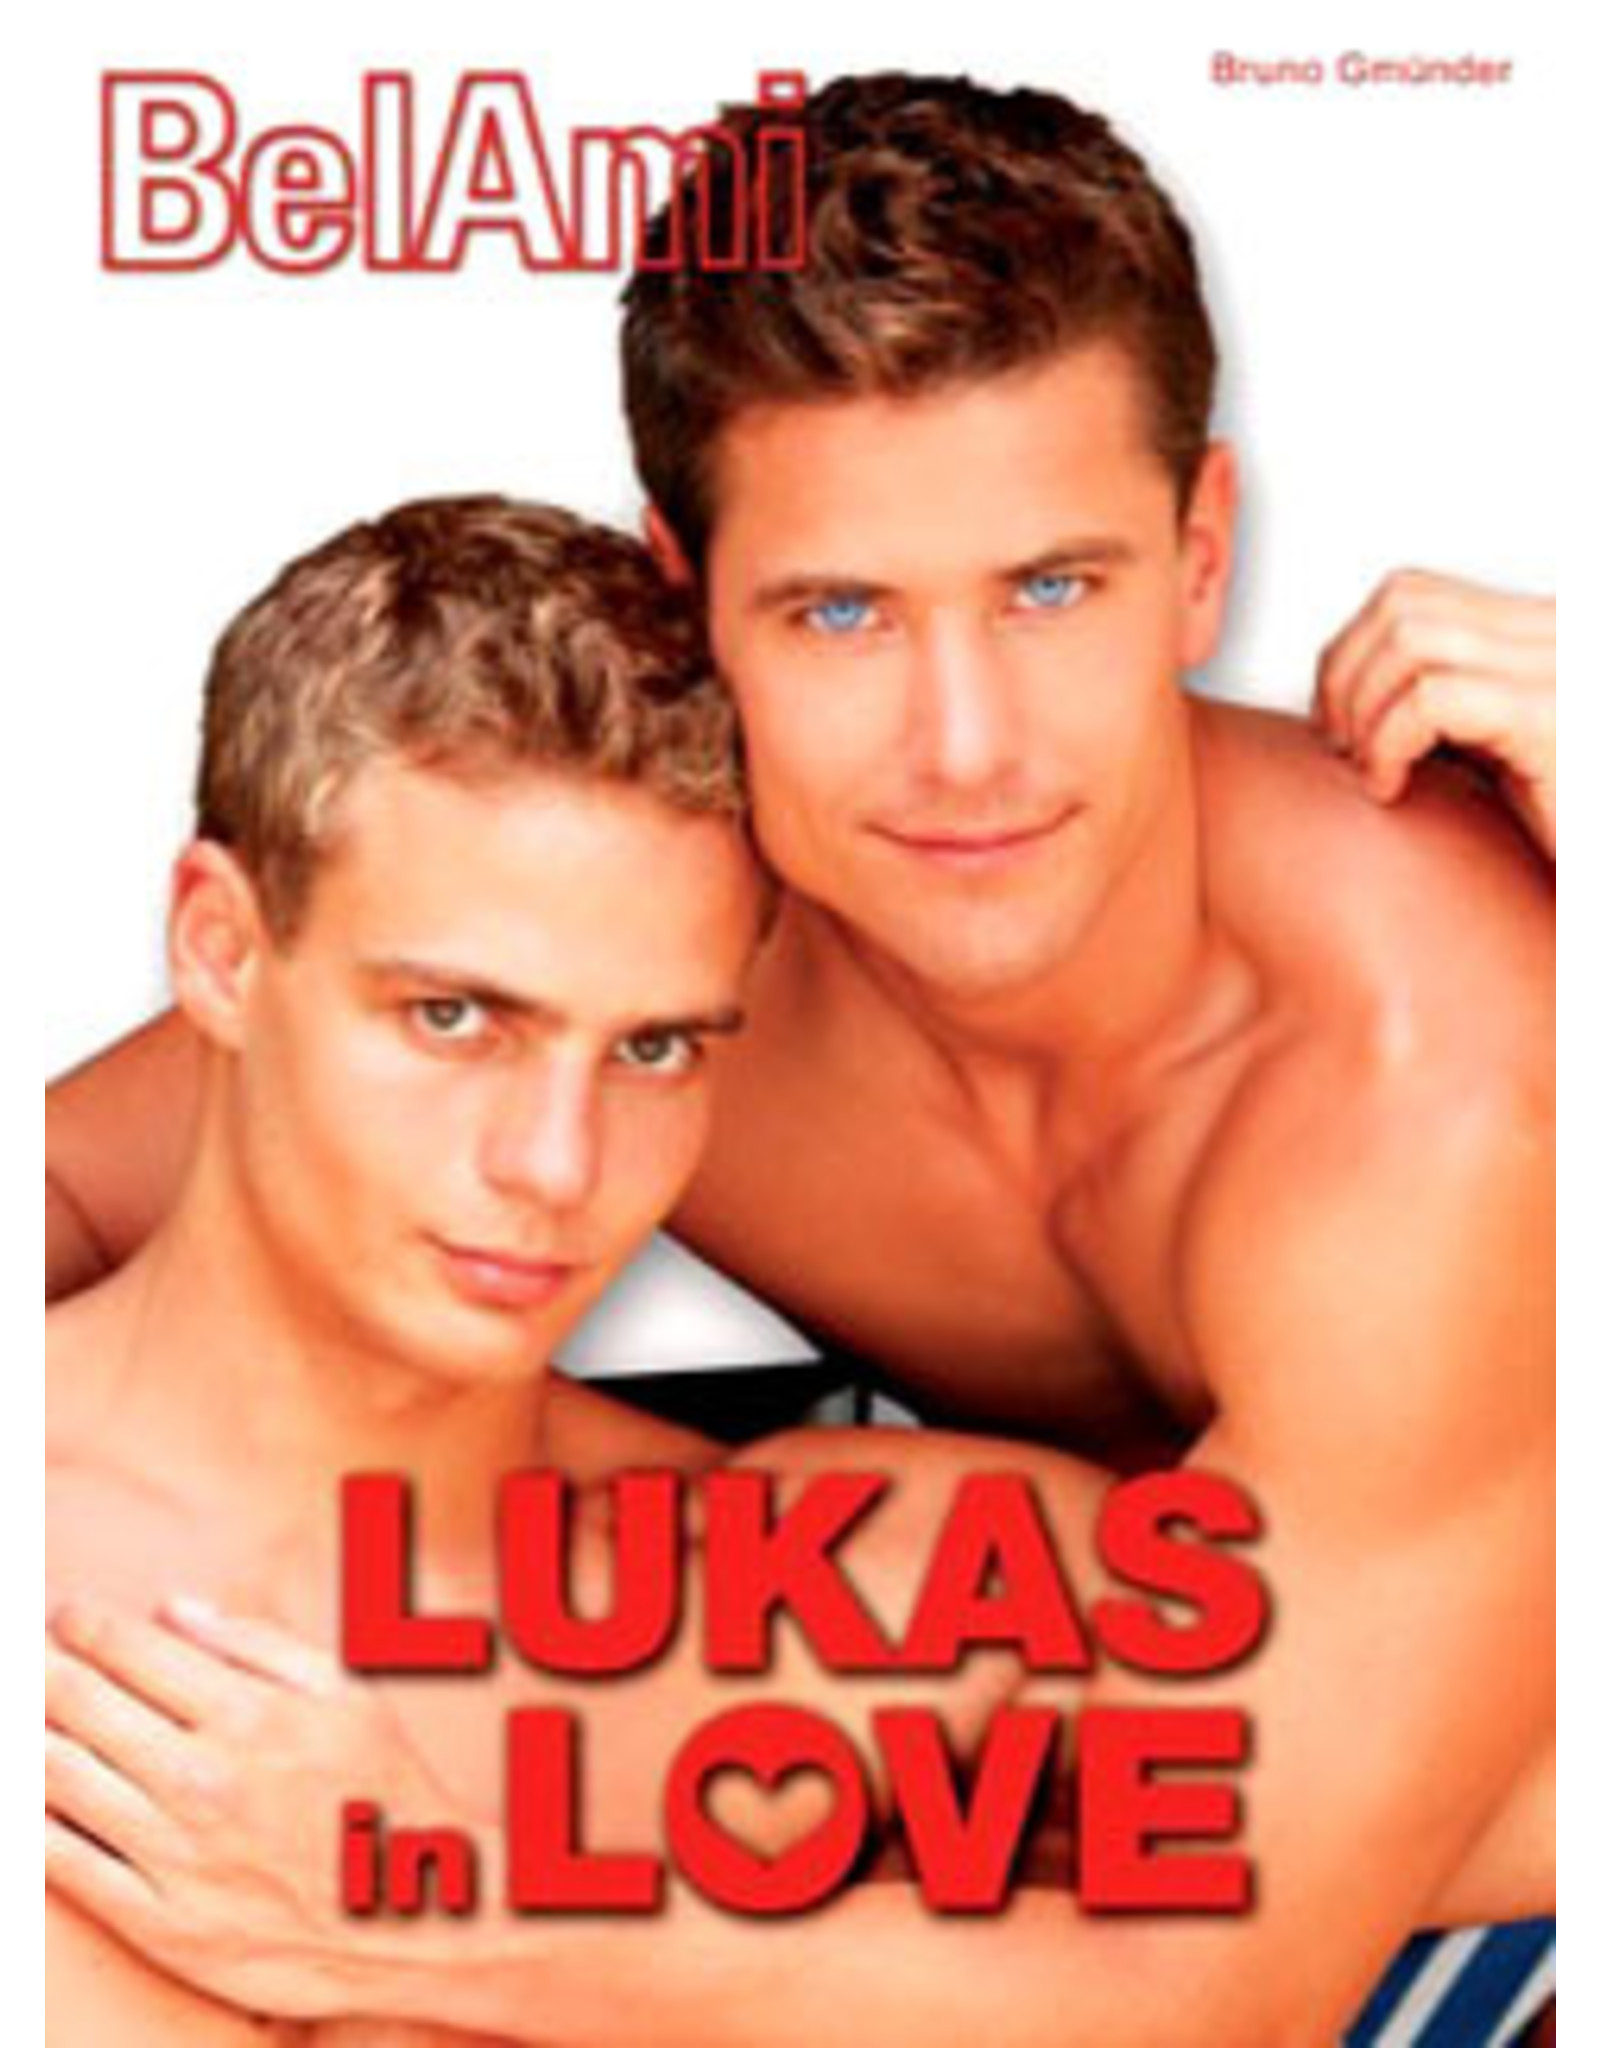 BEL AMI - LUKAS IN LOVE